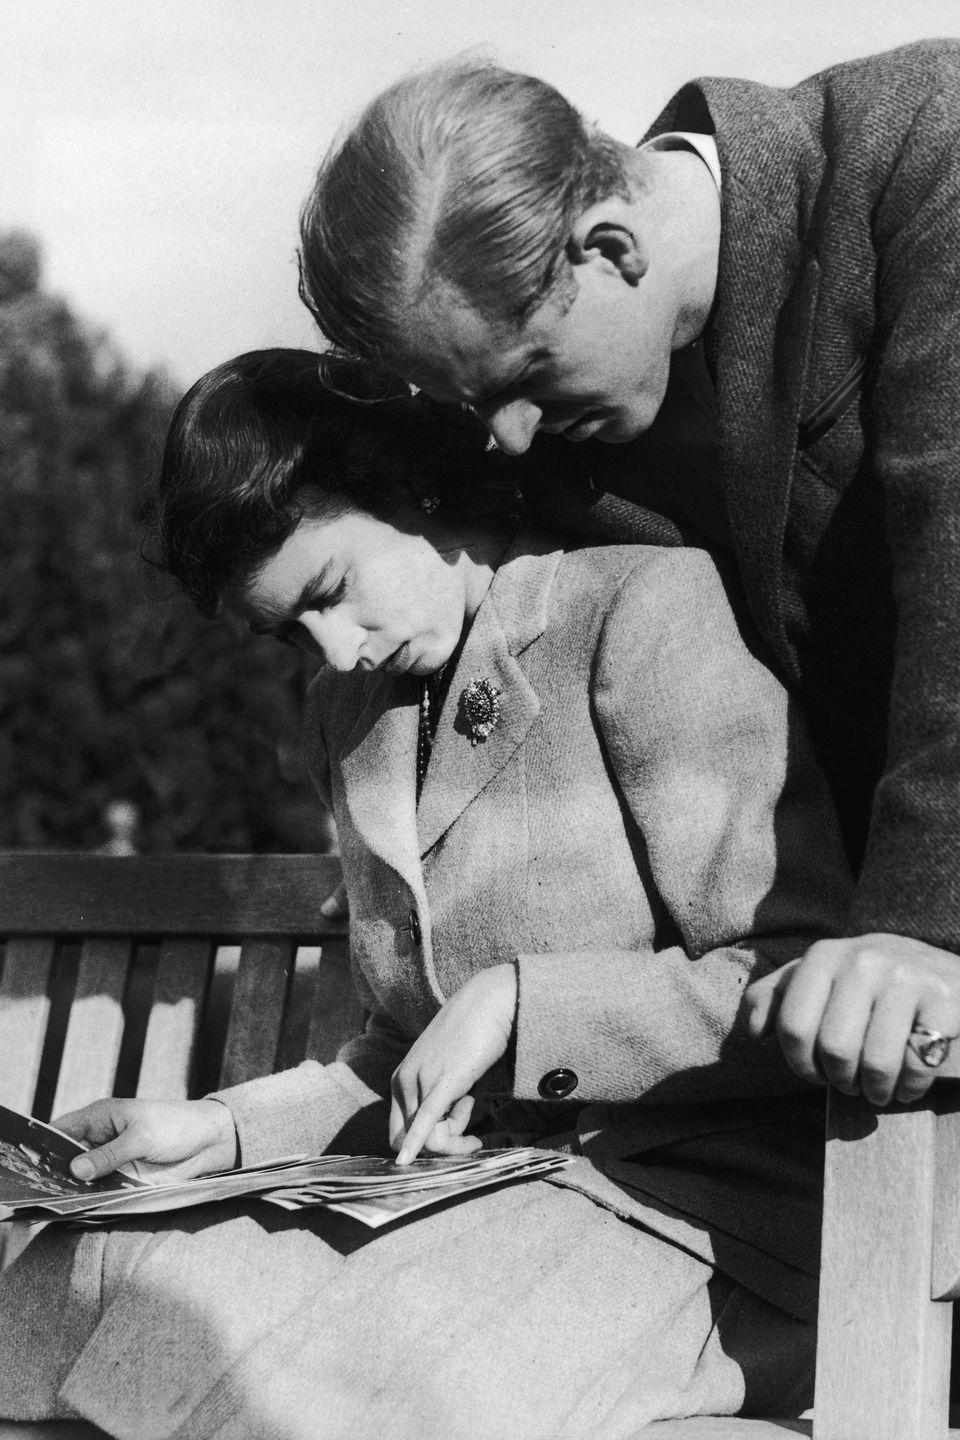 <p>The newlyweds look at their wedding photographs during their first honeymoon in Romsey, New Hampshire. Their second honeymoon was in Malta the following year.</p>